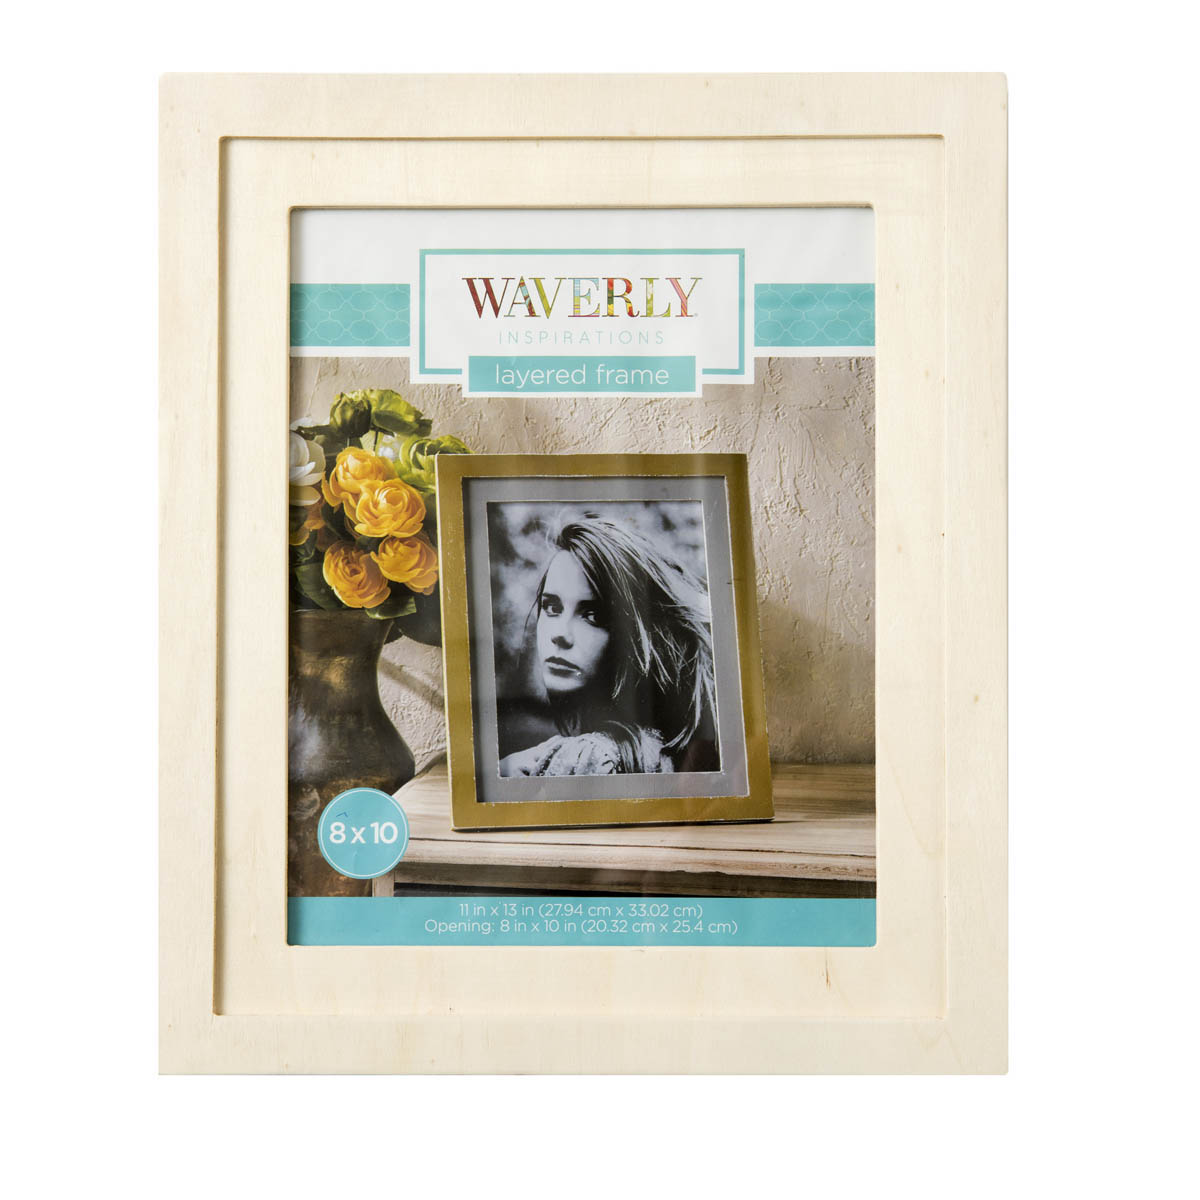 Waverly ® Inspirations Surfaces - Layered Frame for 8